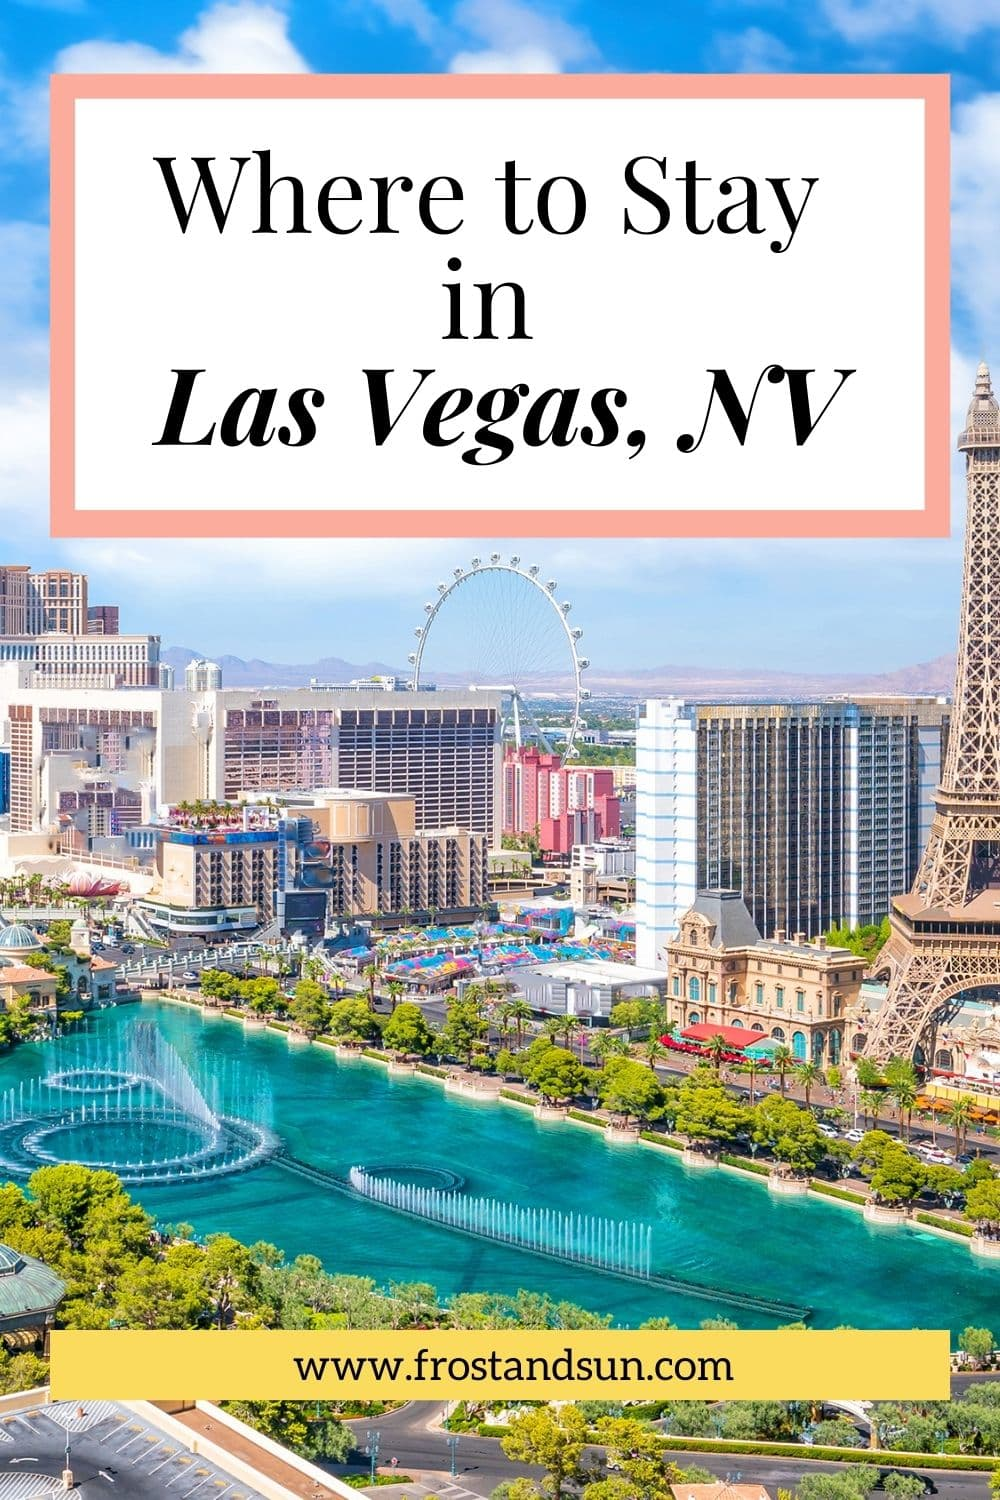 Where to Stay in Las Vegas: 10 Best Hotels